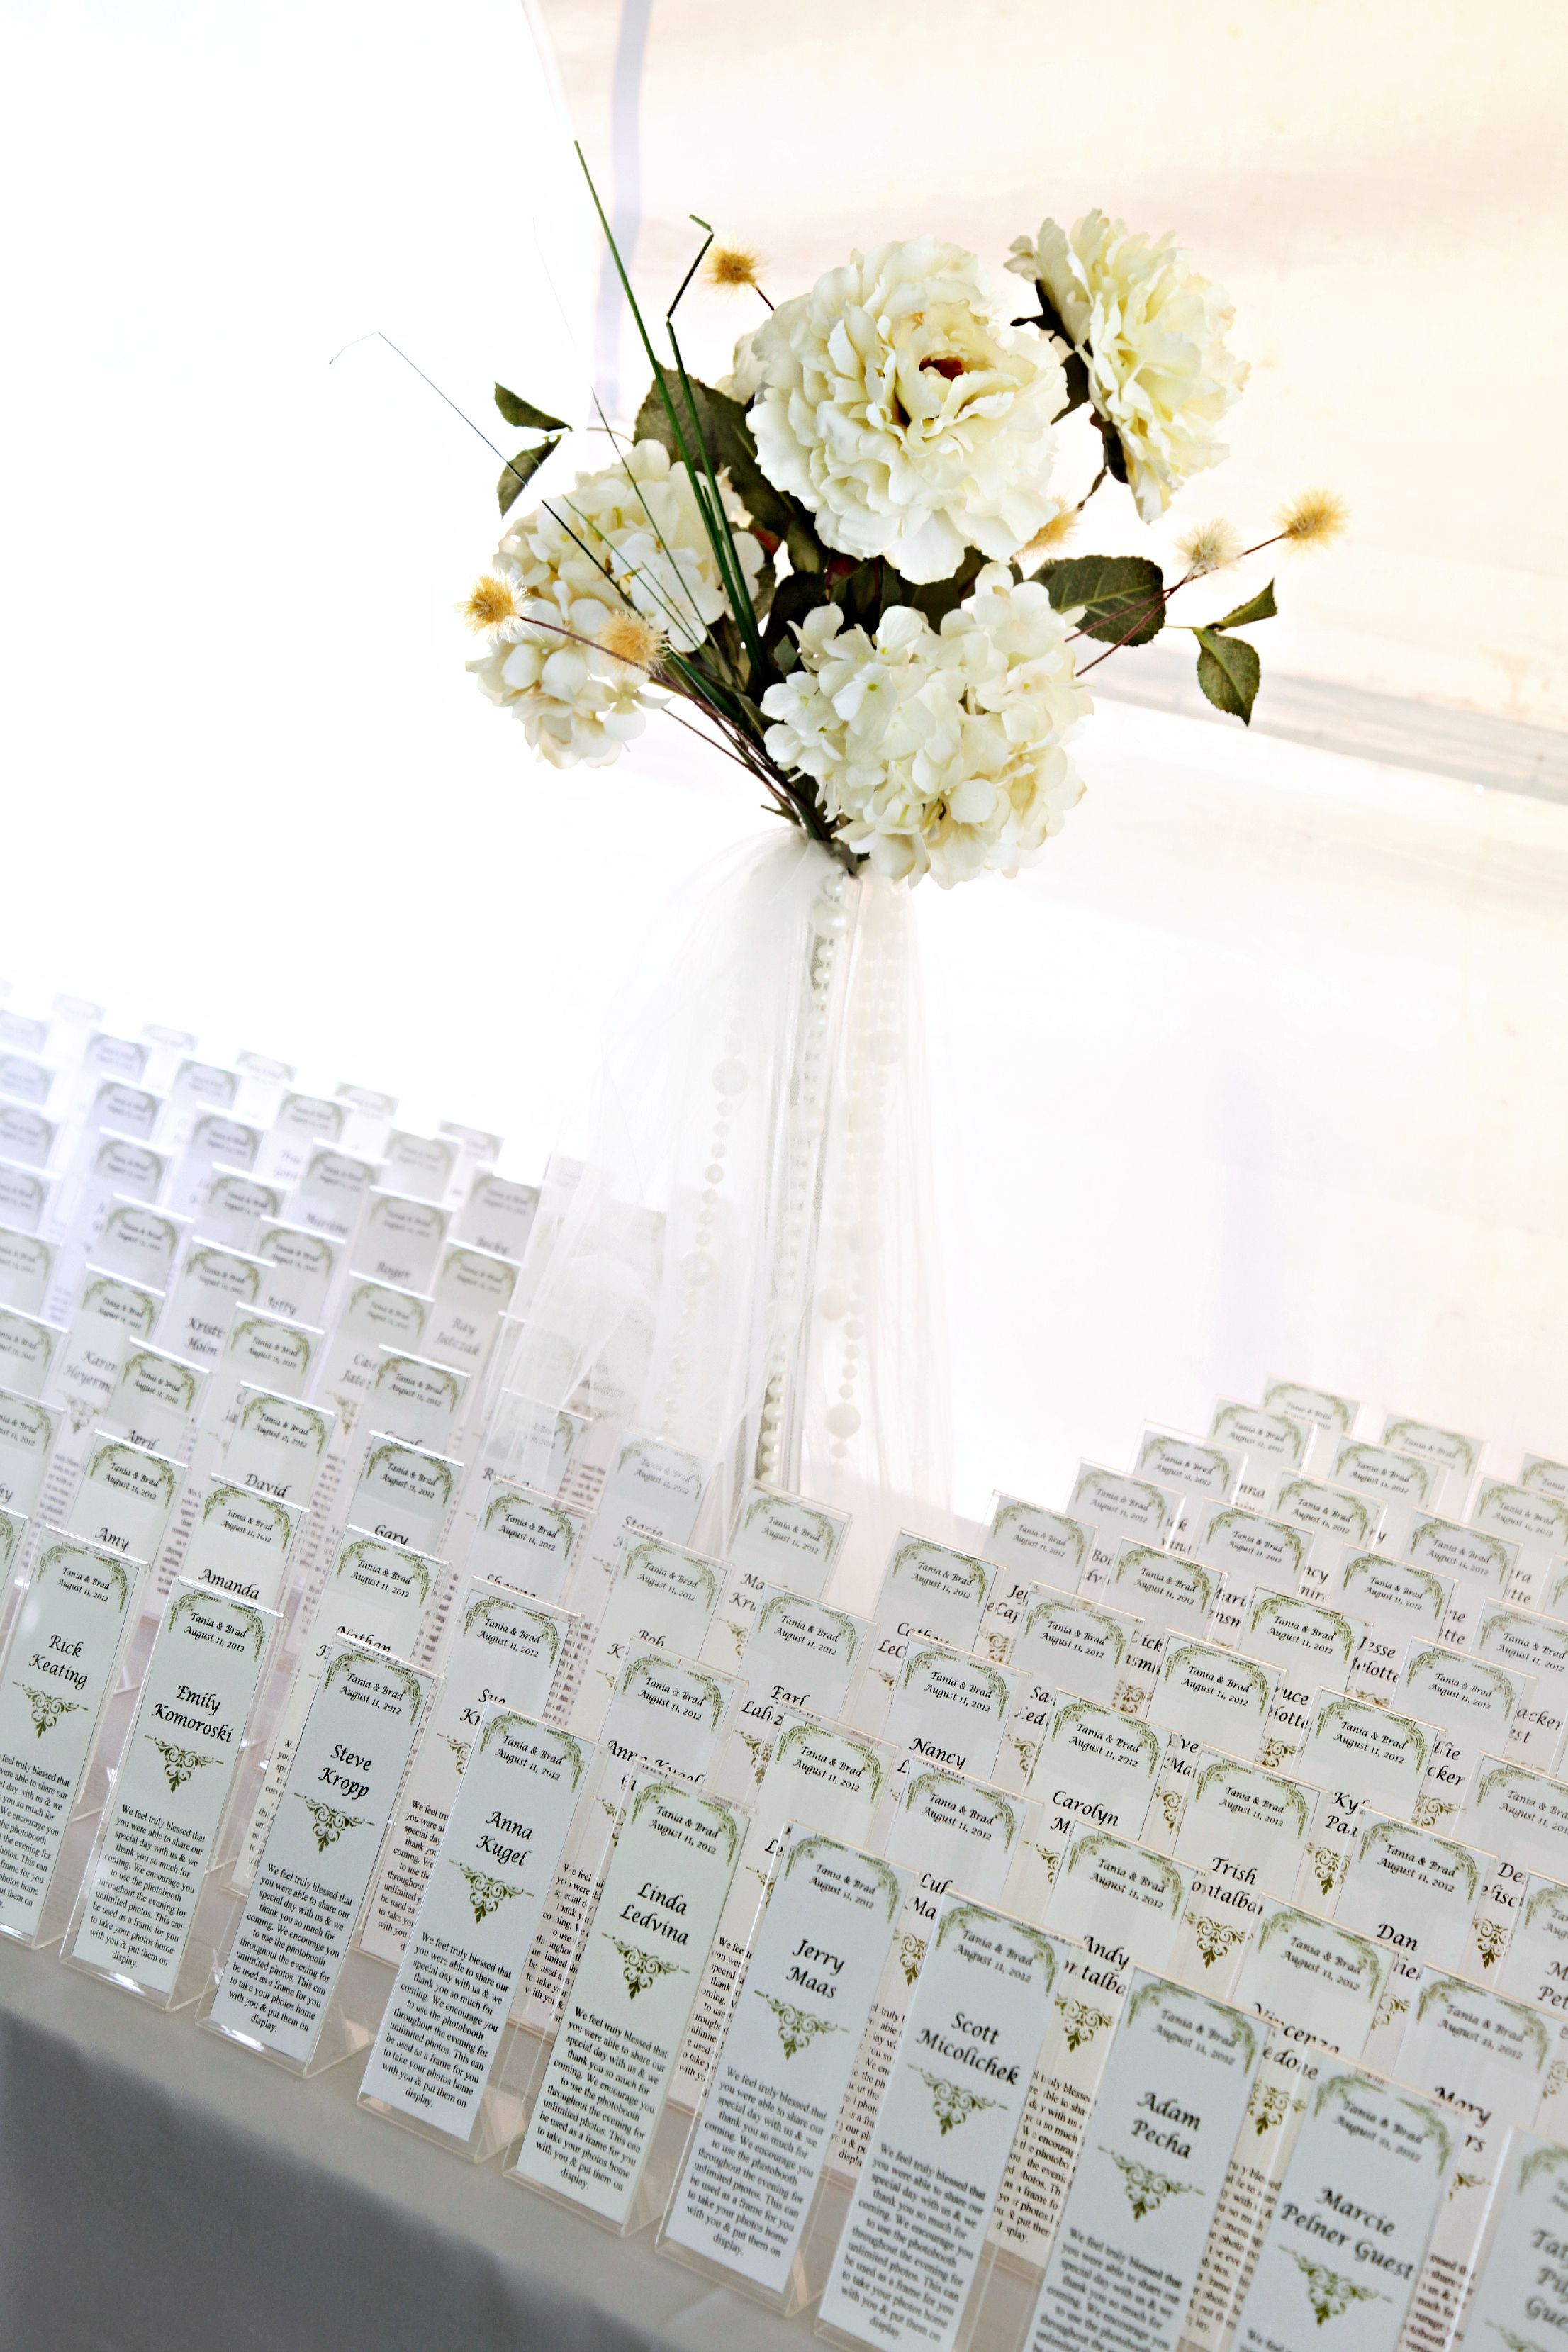 Name Cards-Place Card holders, photo booth picture frames. Perfect ...